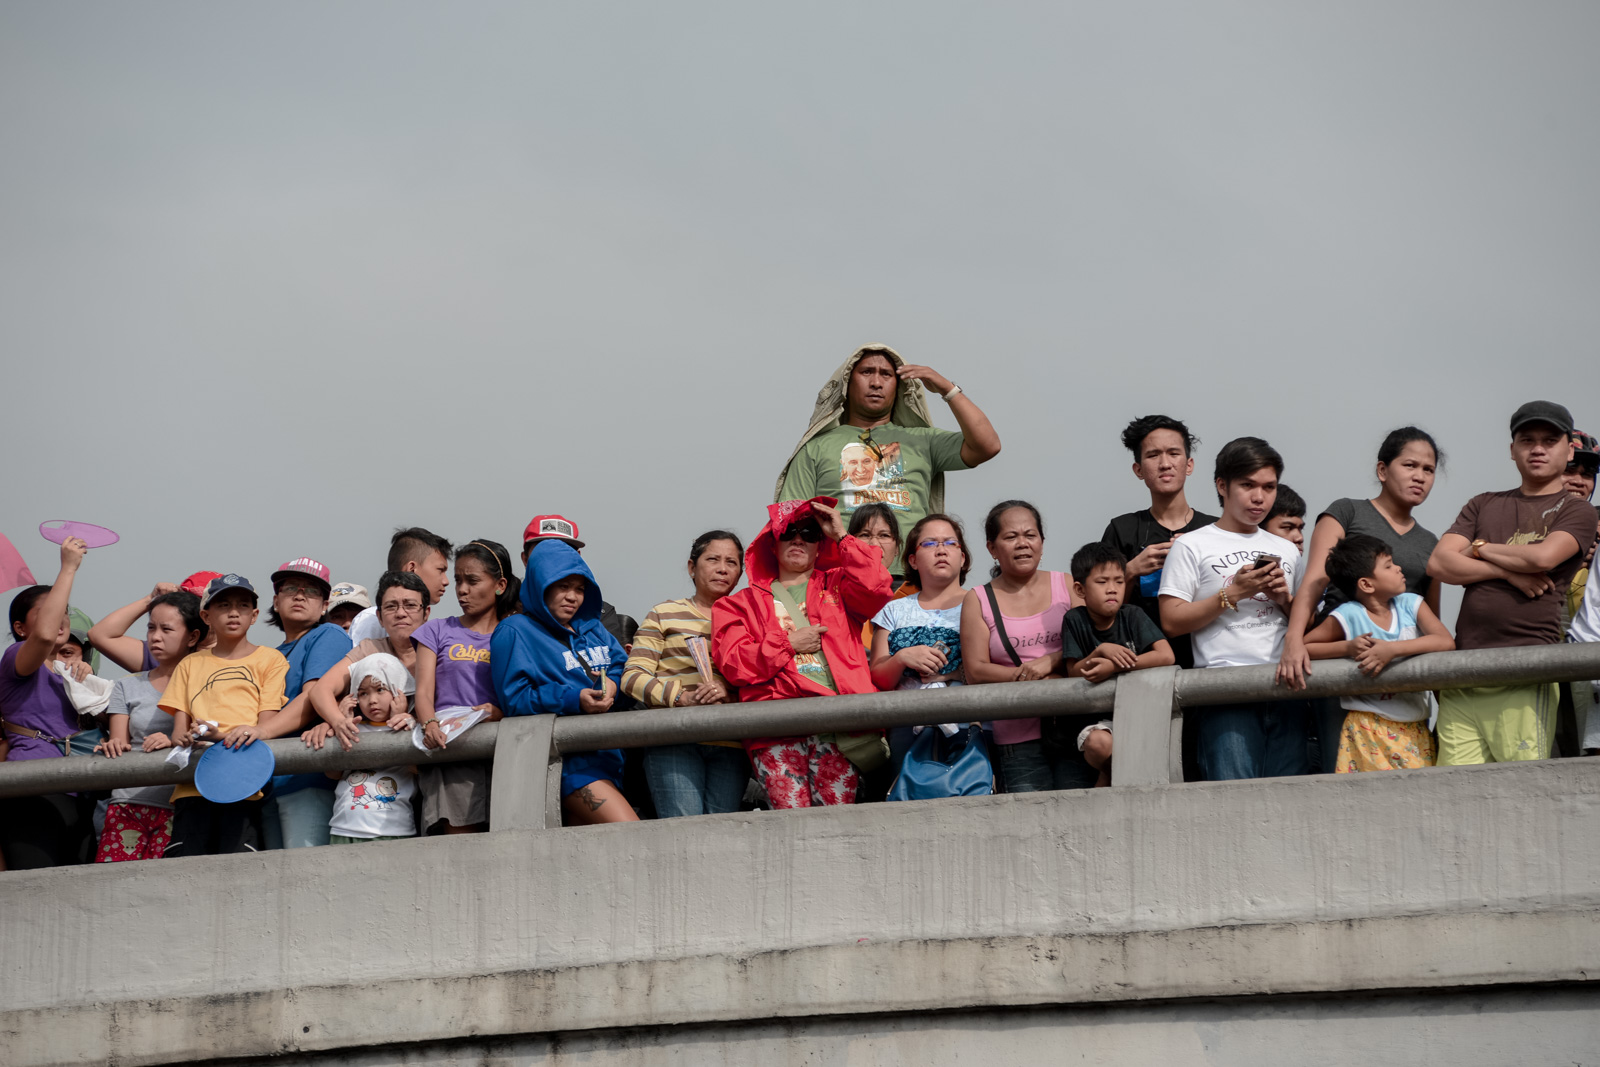 Thousands of Manila residents watch as Pope Francis enter the Malacanang compound, Friday, January 16, 2015. Pope Francis is in the Philippines for a five-day trip to the sole Catholic nation in Asia, on January 15 to 19, 2015. With 80% of its population Catholic, millions of faithfuls are expected to flock the streets hoping for a glimpse of the Pope.